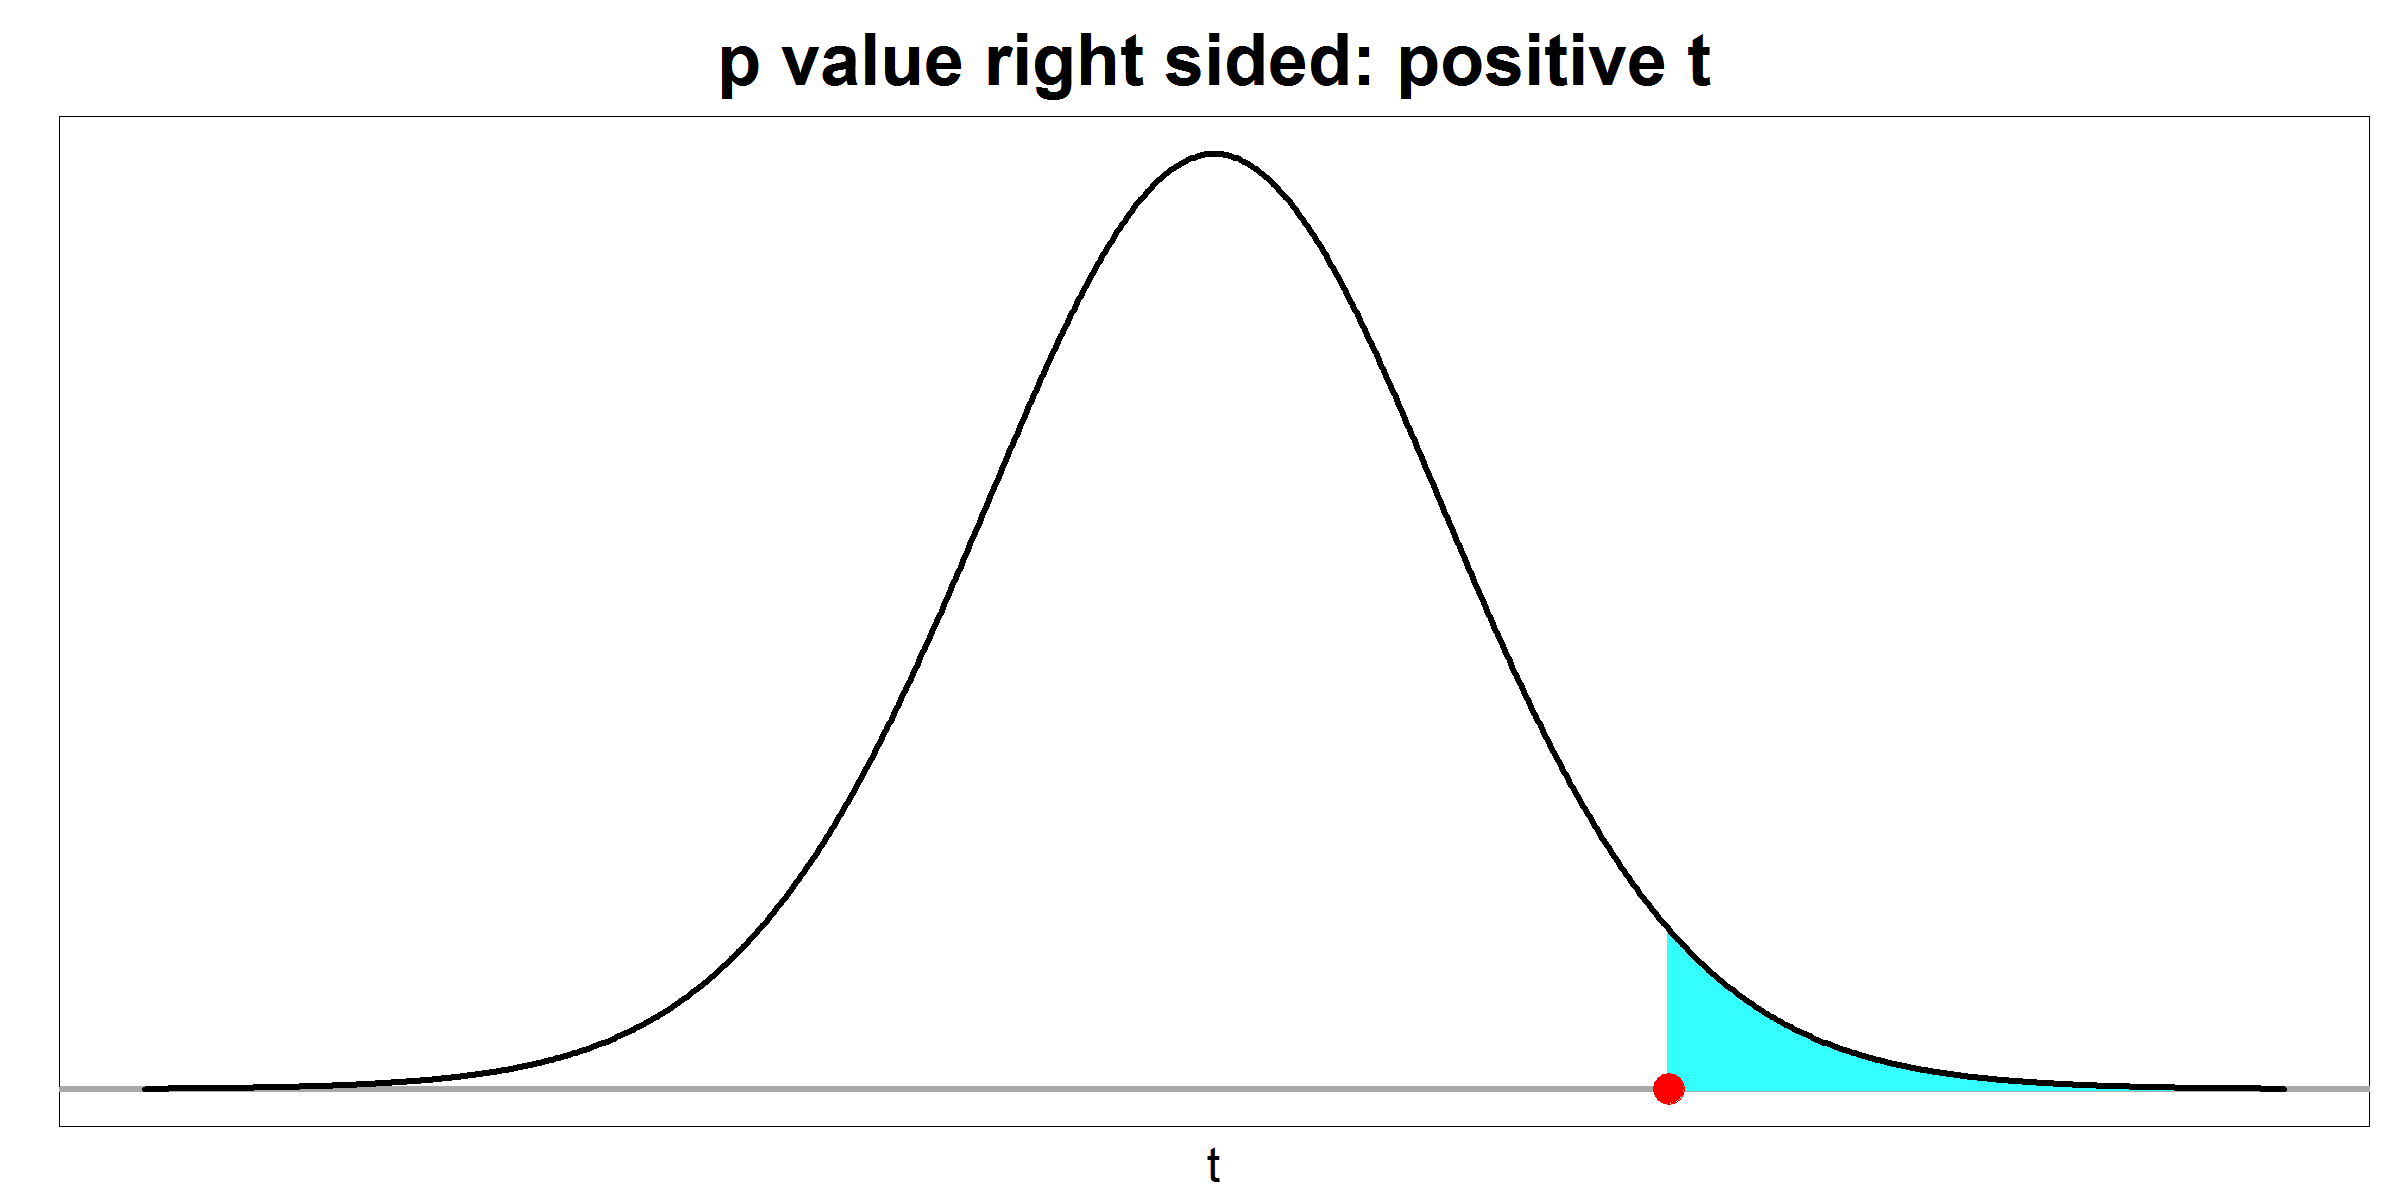 p value - right sided - positive t